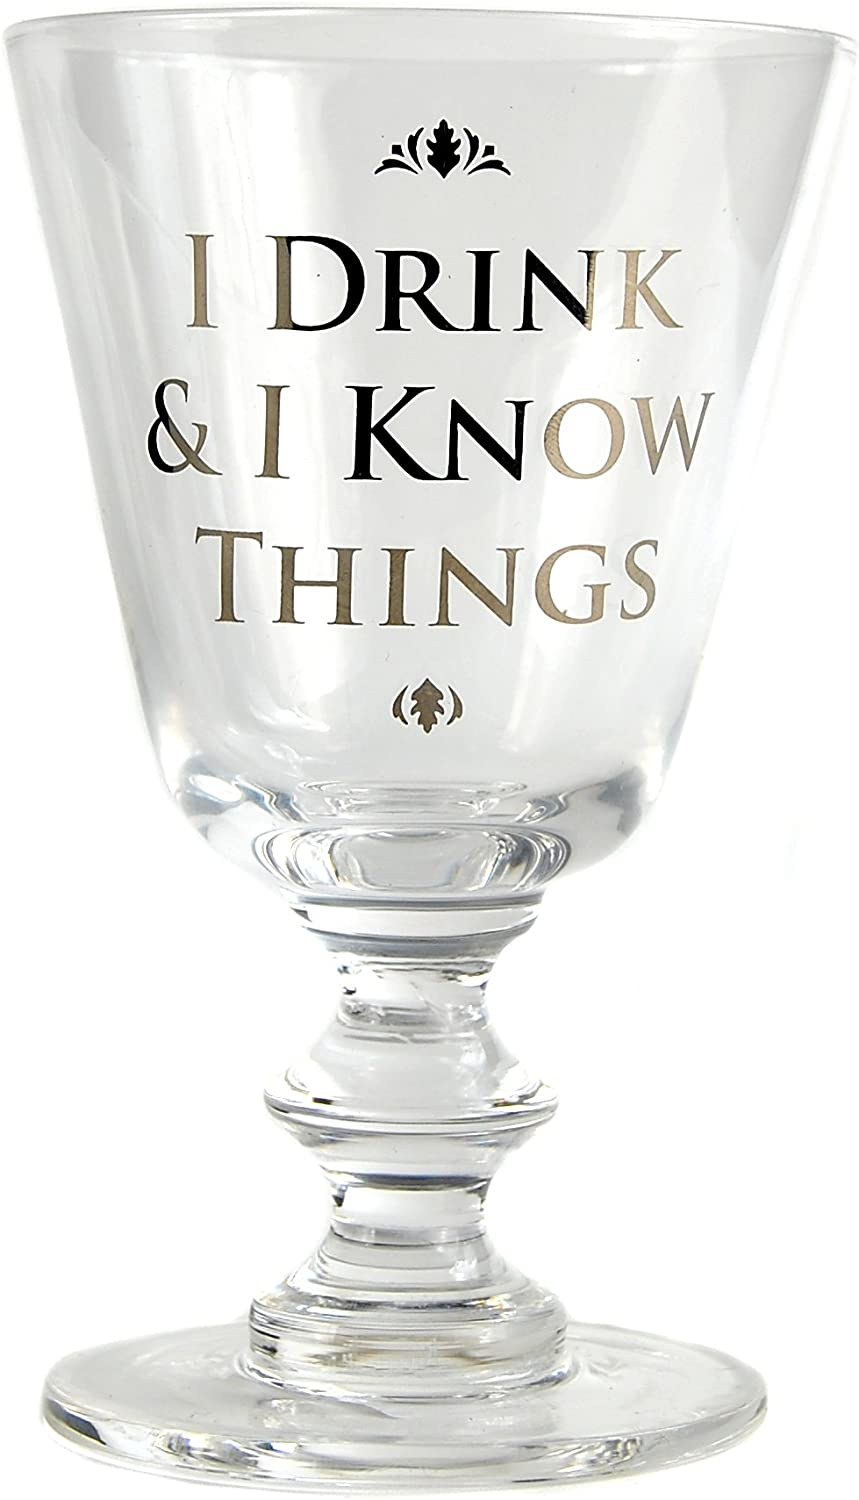 Glass Wine Boxed (275ml) - Game Of Thrones (Drink And Know)